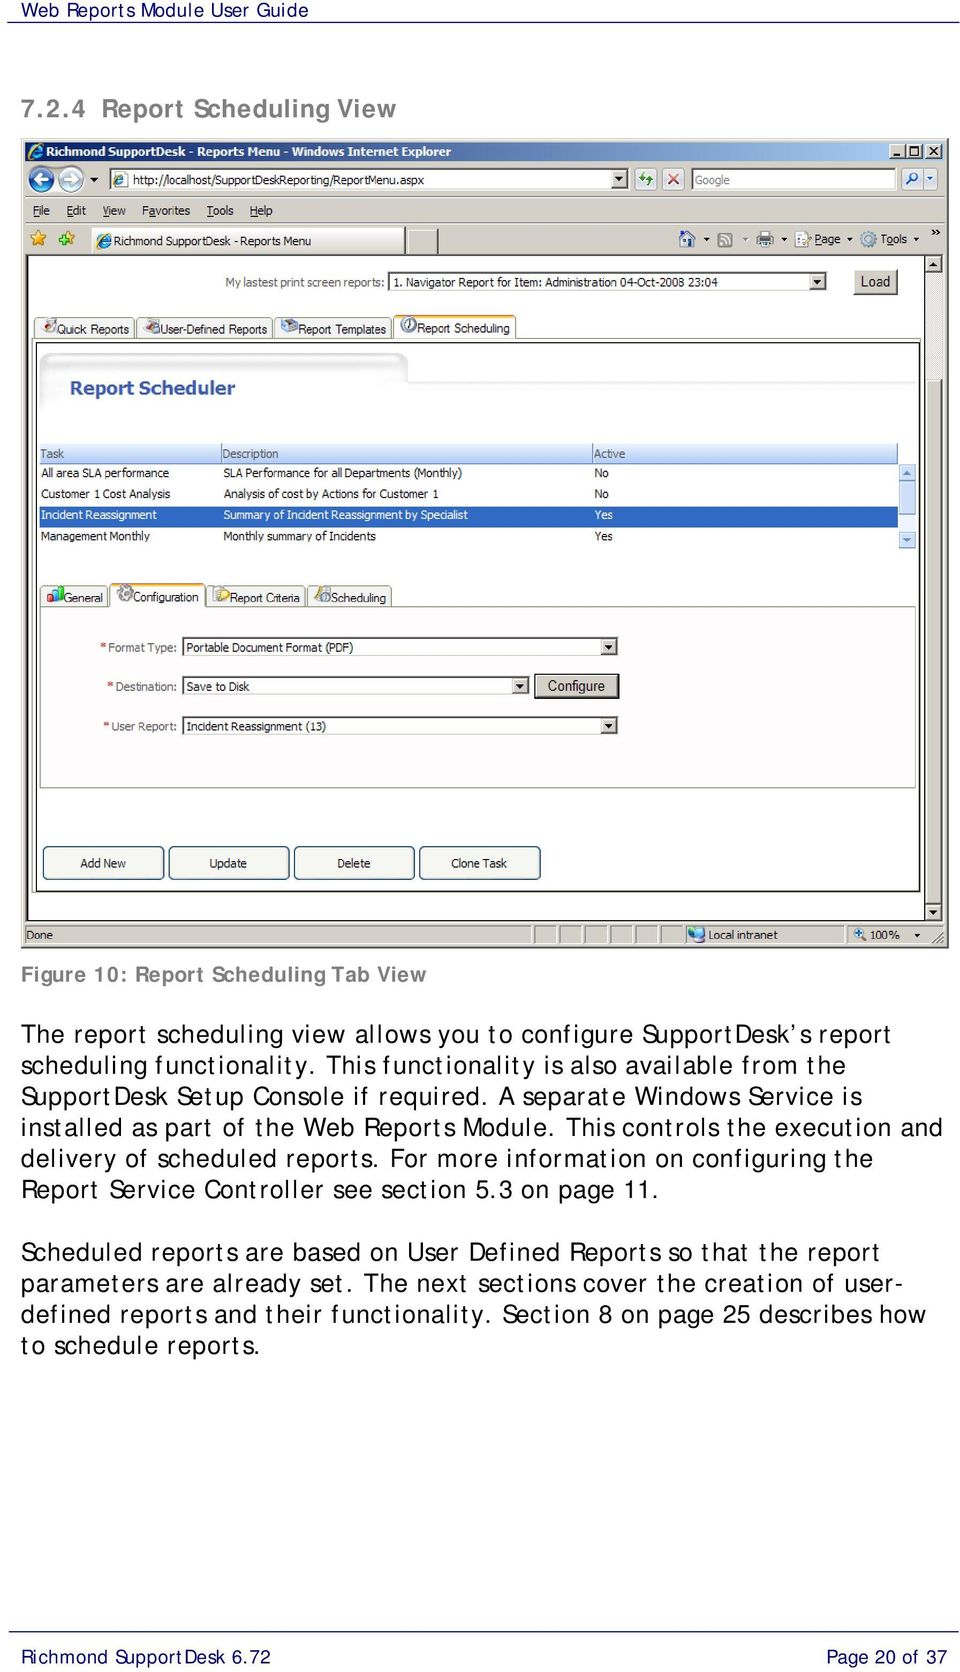 This controls the execution and delivery of scheduled reports. For more information on configuring the Report Service Controller see section 5.3 on page 11.